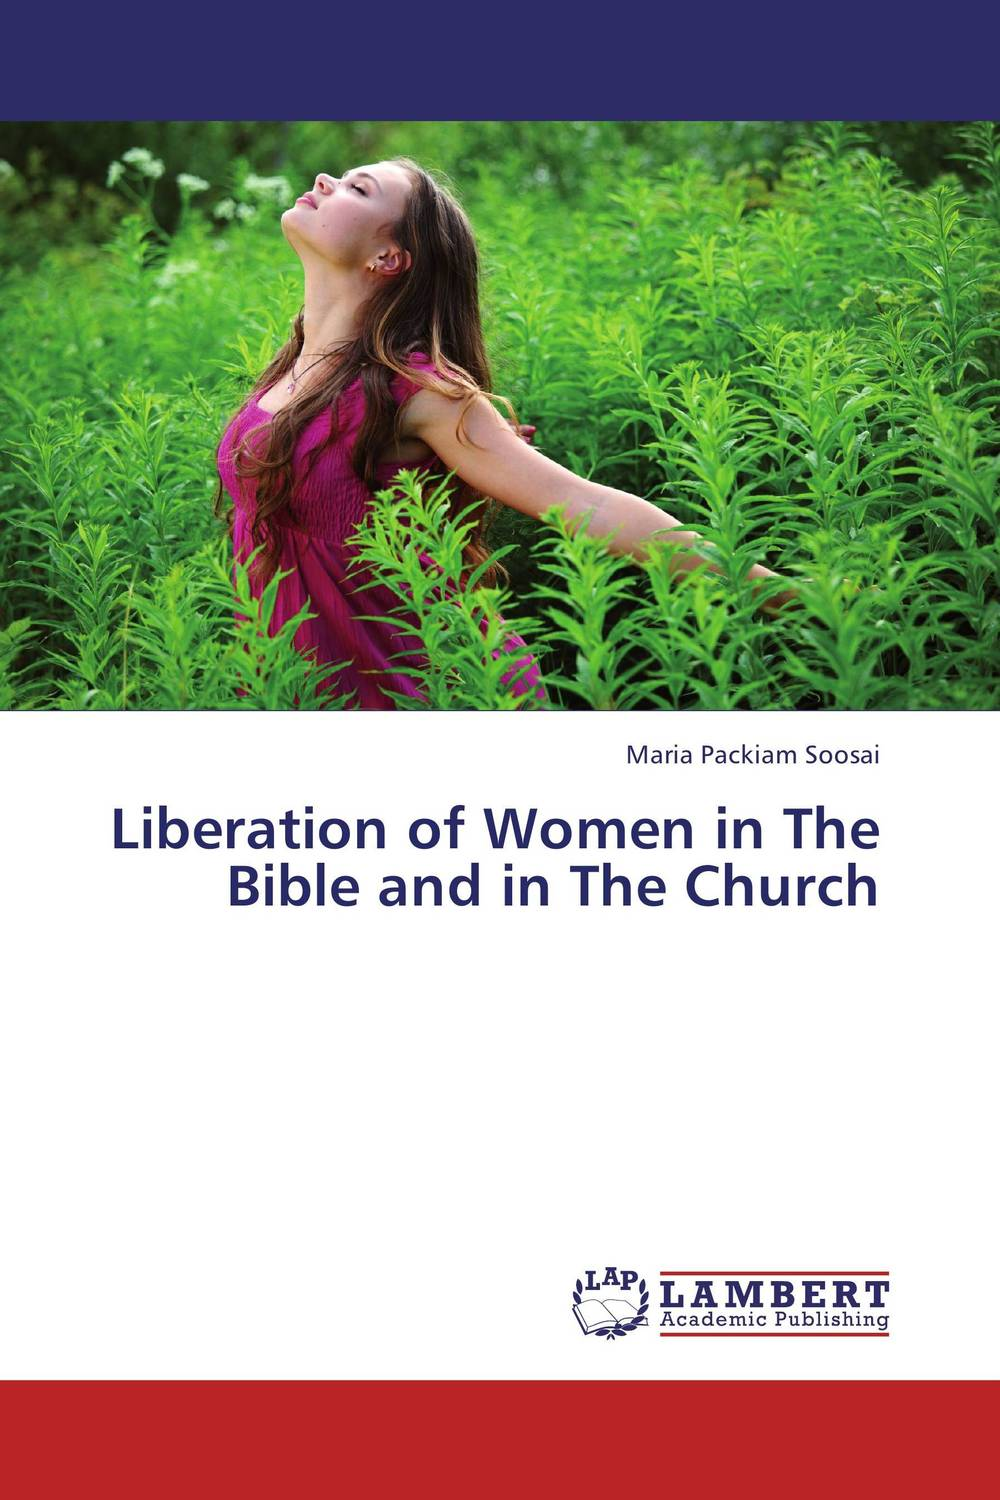 Liberation of Women in The Bible and in The Church